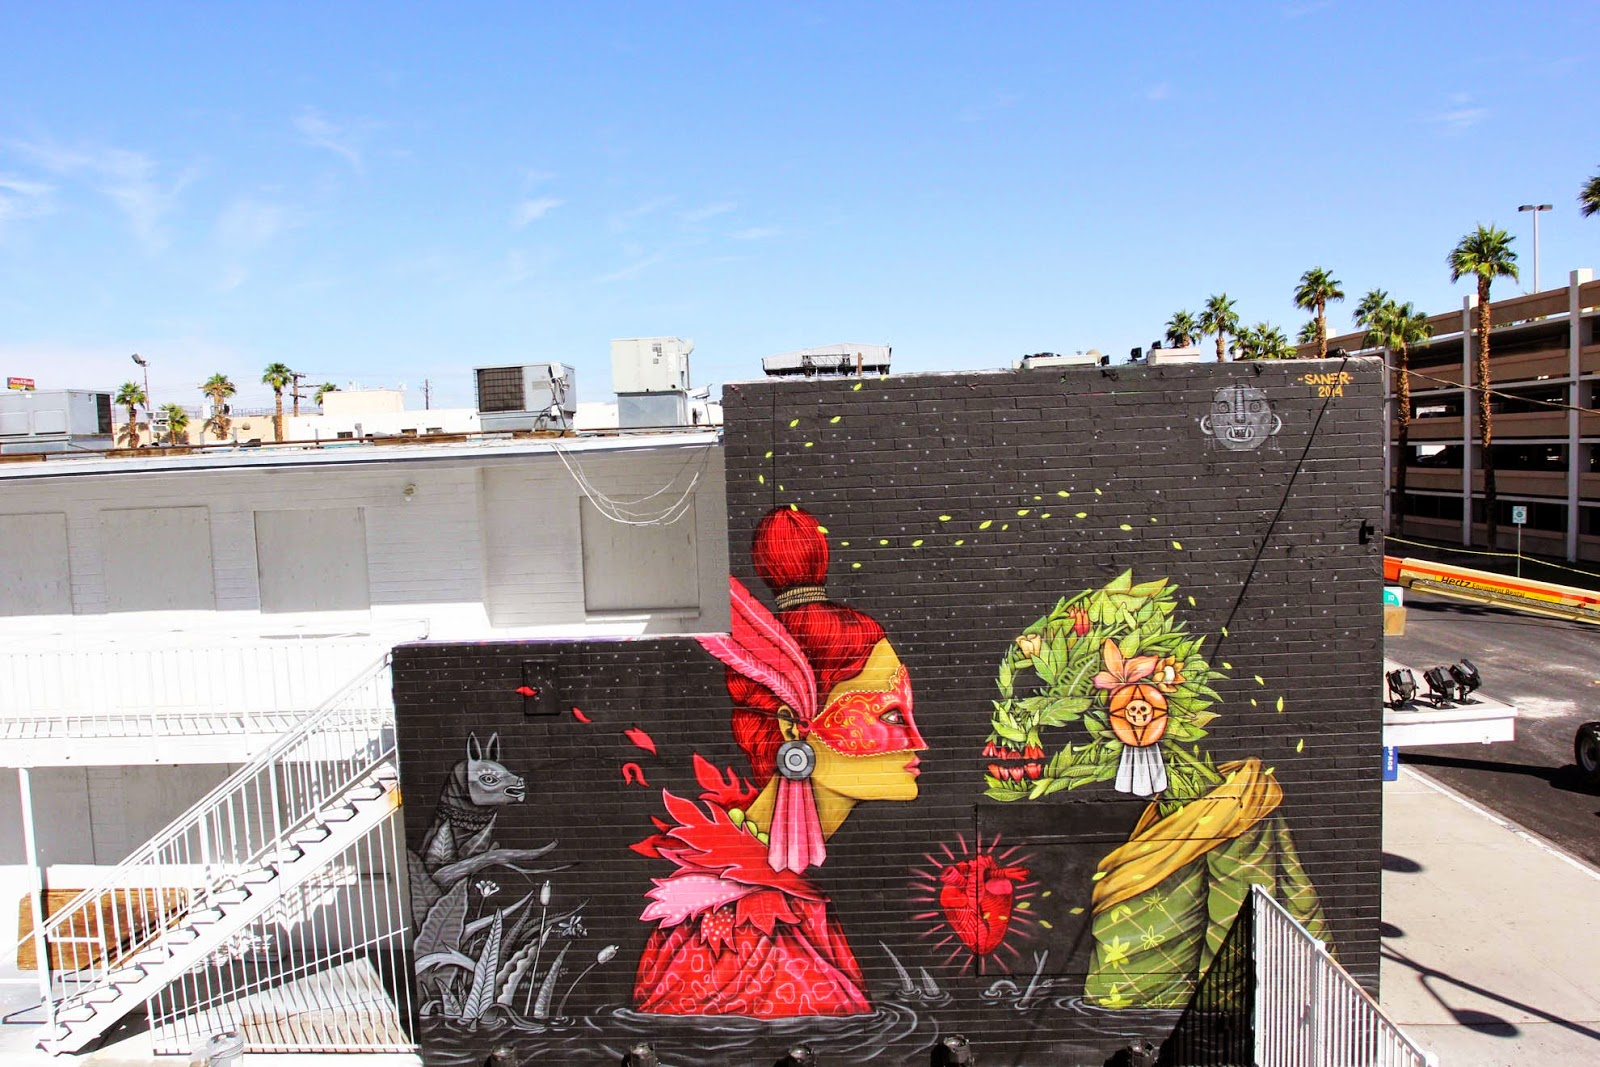 Saner creates a new mural in Las Vegas for JustKids and Life Is Beautiful